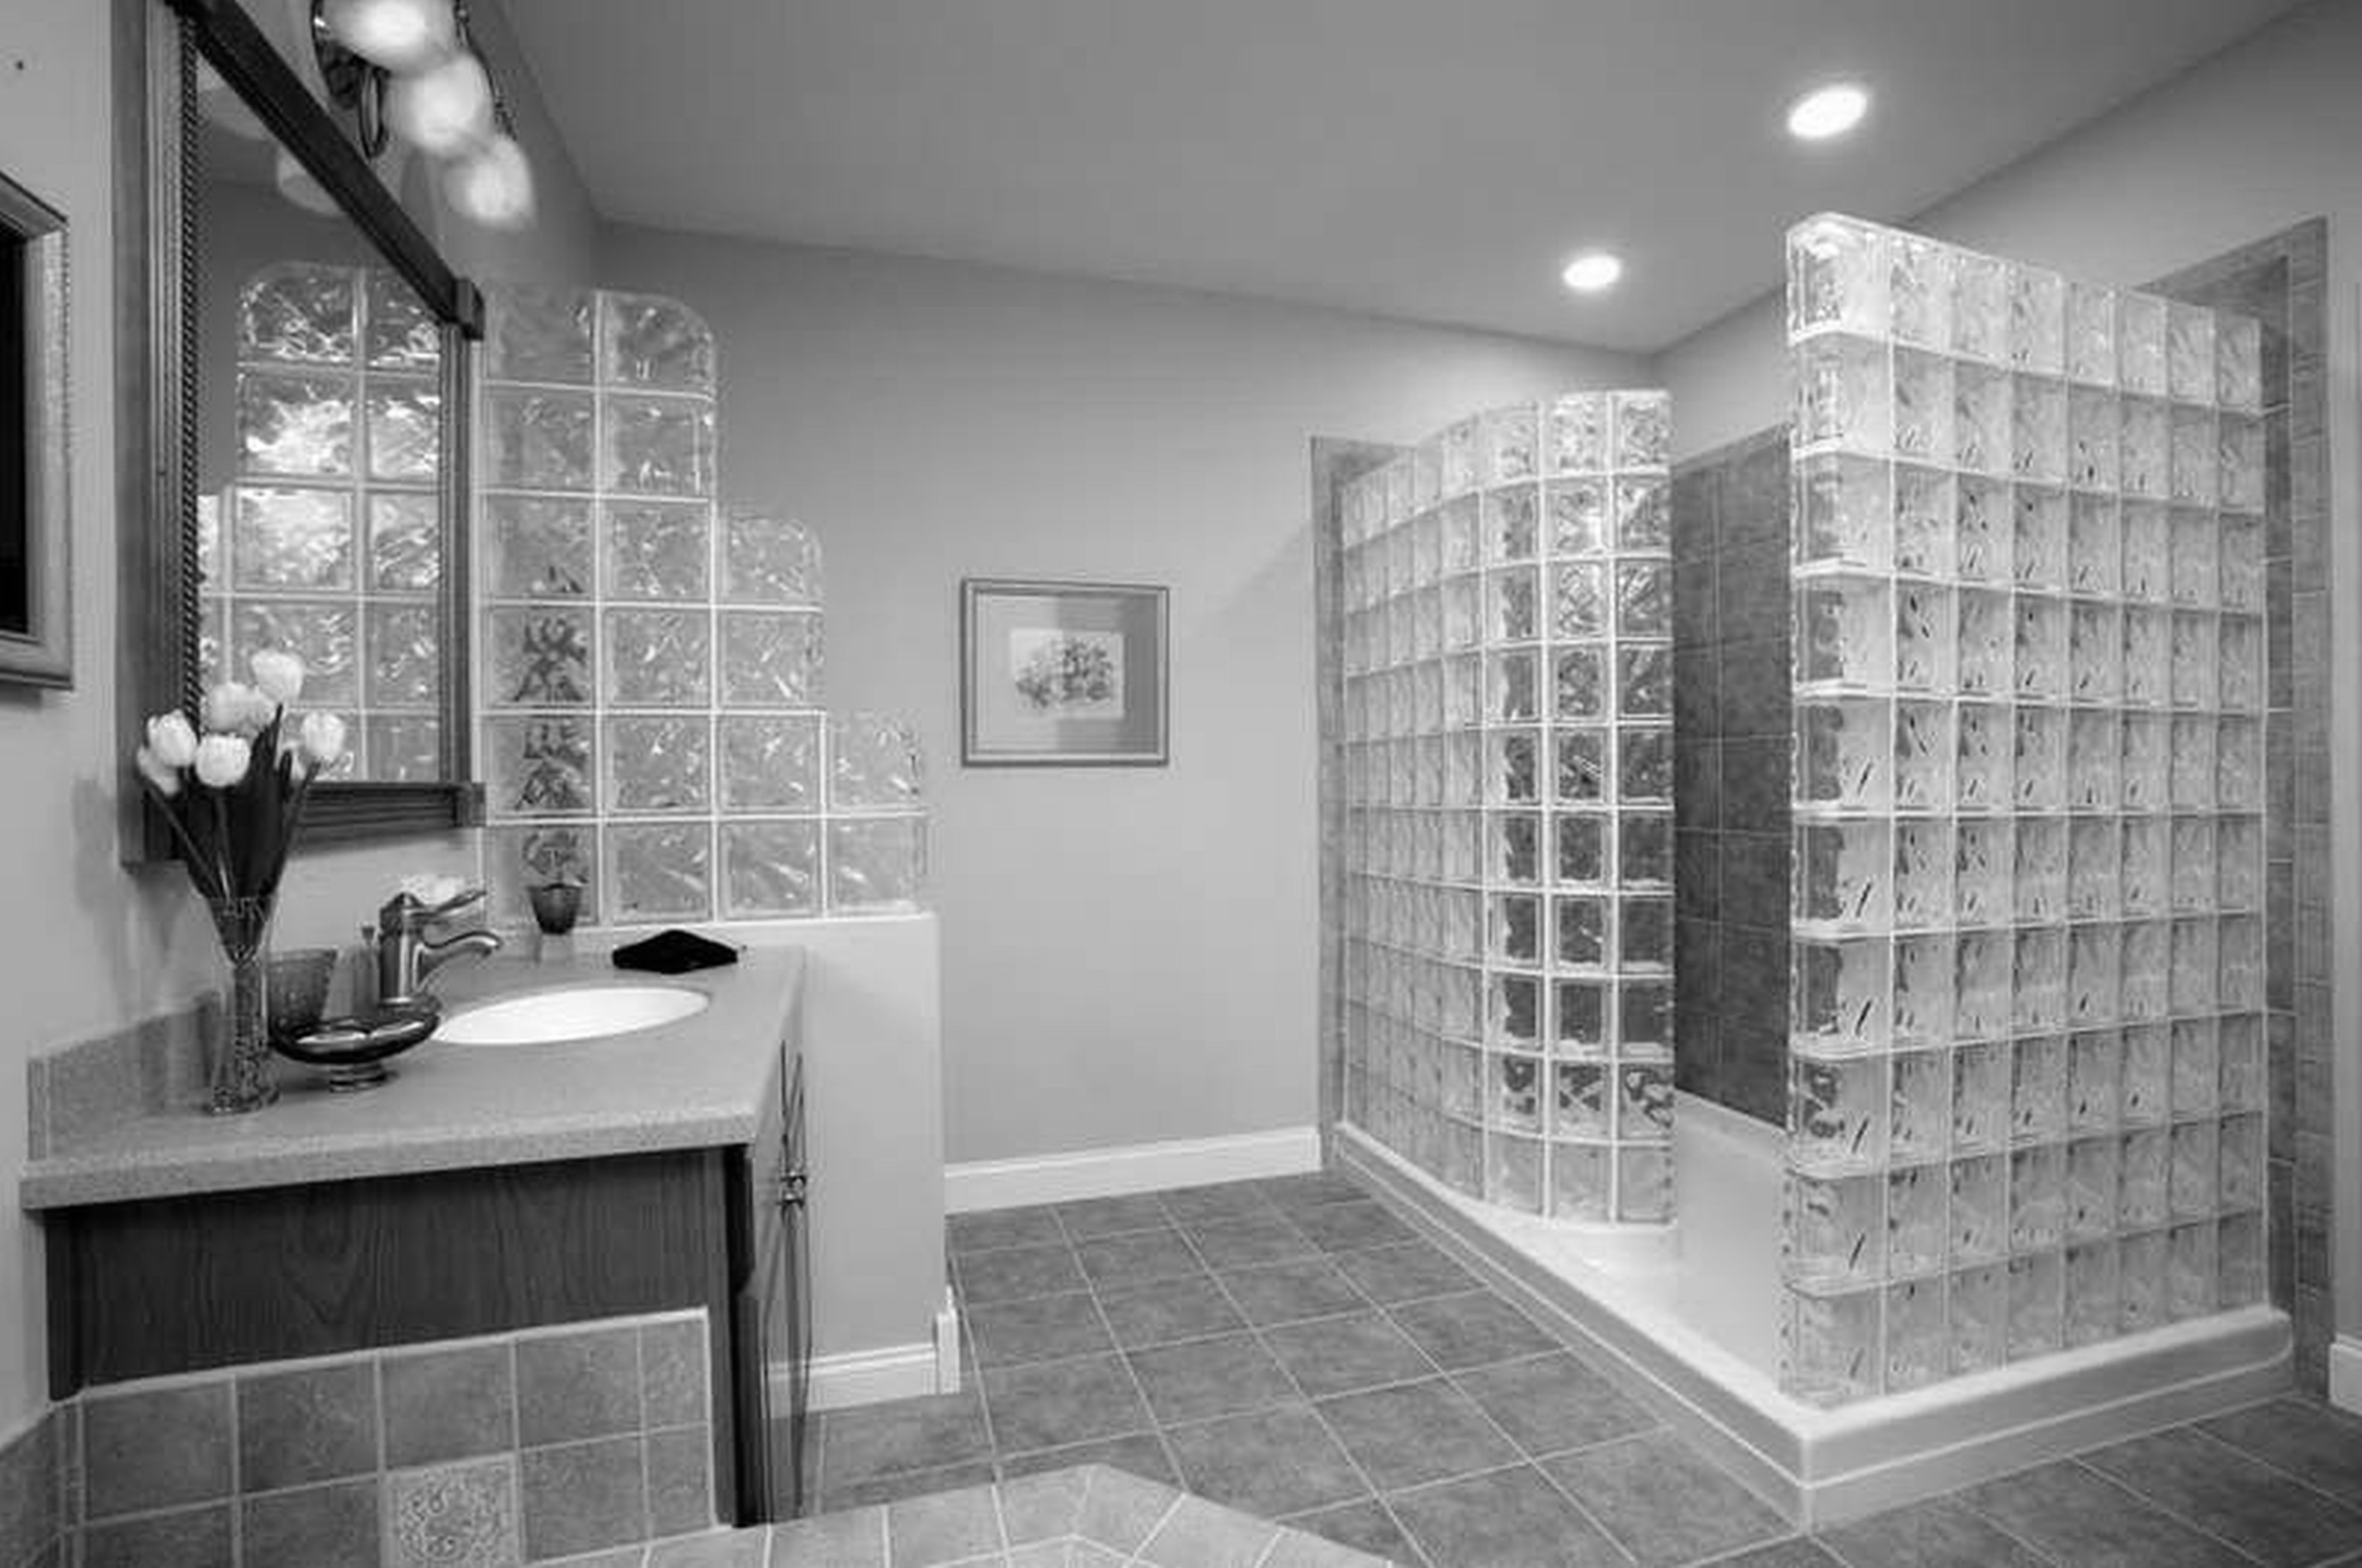 Monochrome Bathroom Design Ideas Cube Glass Tile Shower Wall Grey Ceramic Tiles Flooring Bathroom Vanity With 3 Sconces